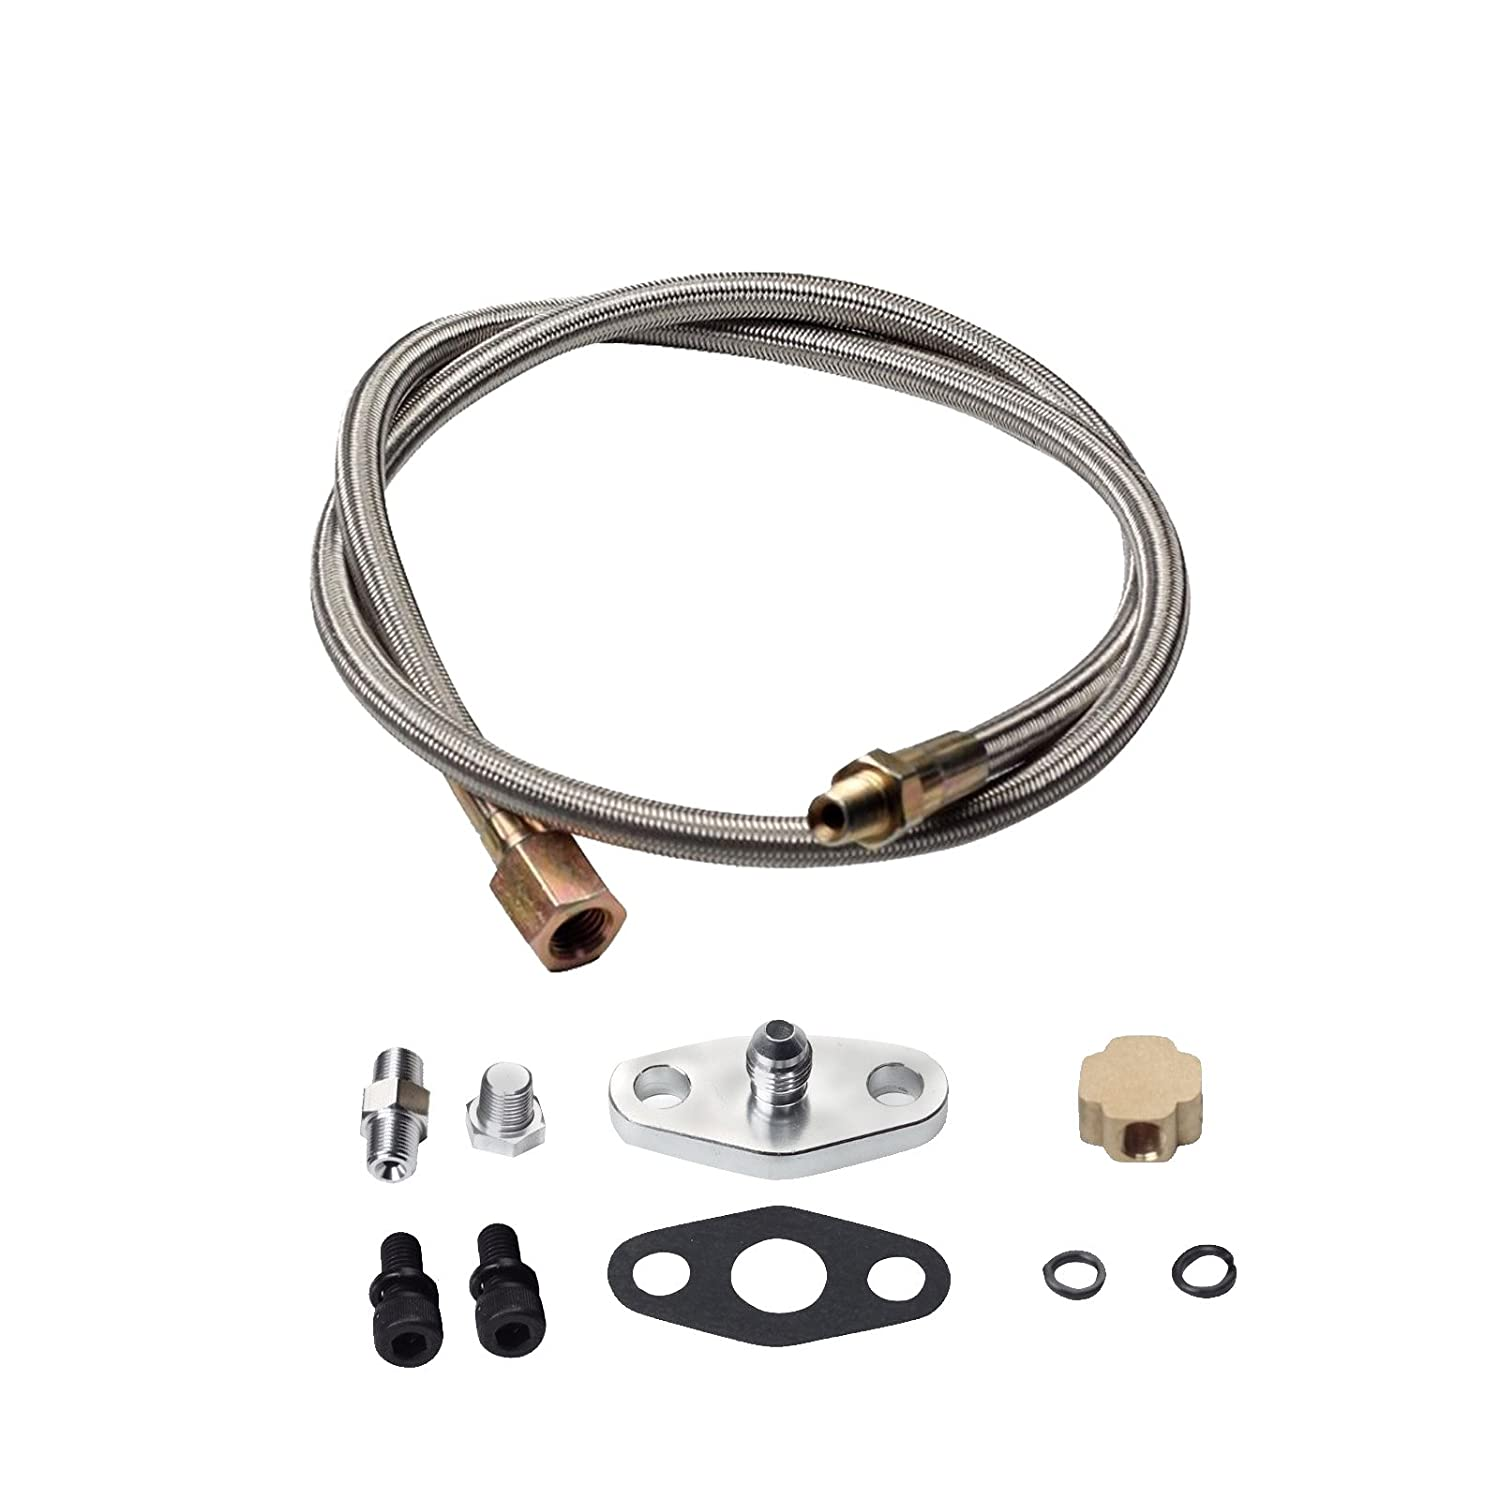 yjracing 36' Braided Turbo Oil Inlet Feed Line Fitting Kit Fit for T3 T4 T66 T70 Turbo Turbocharger